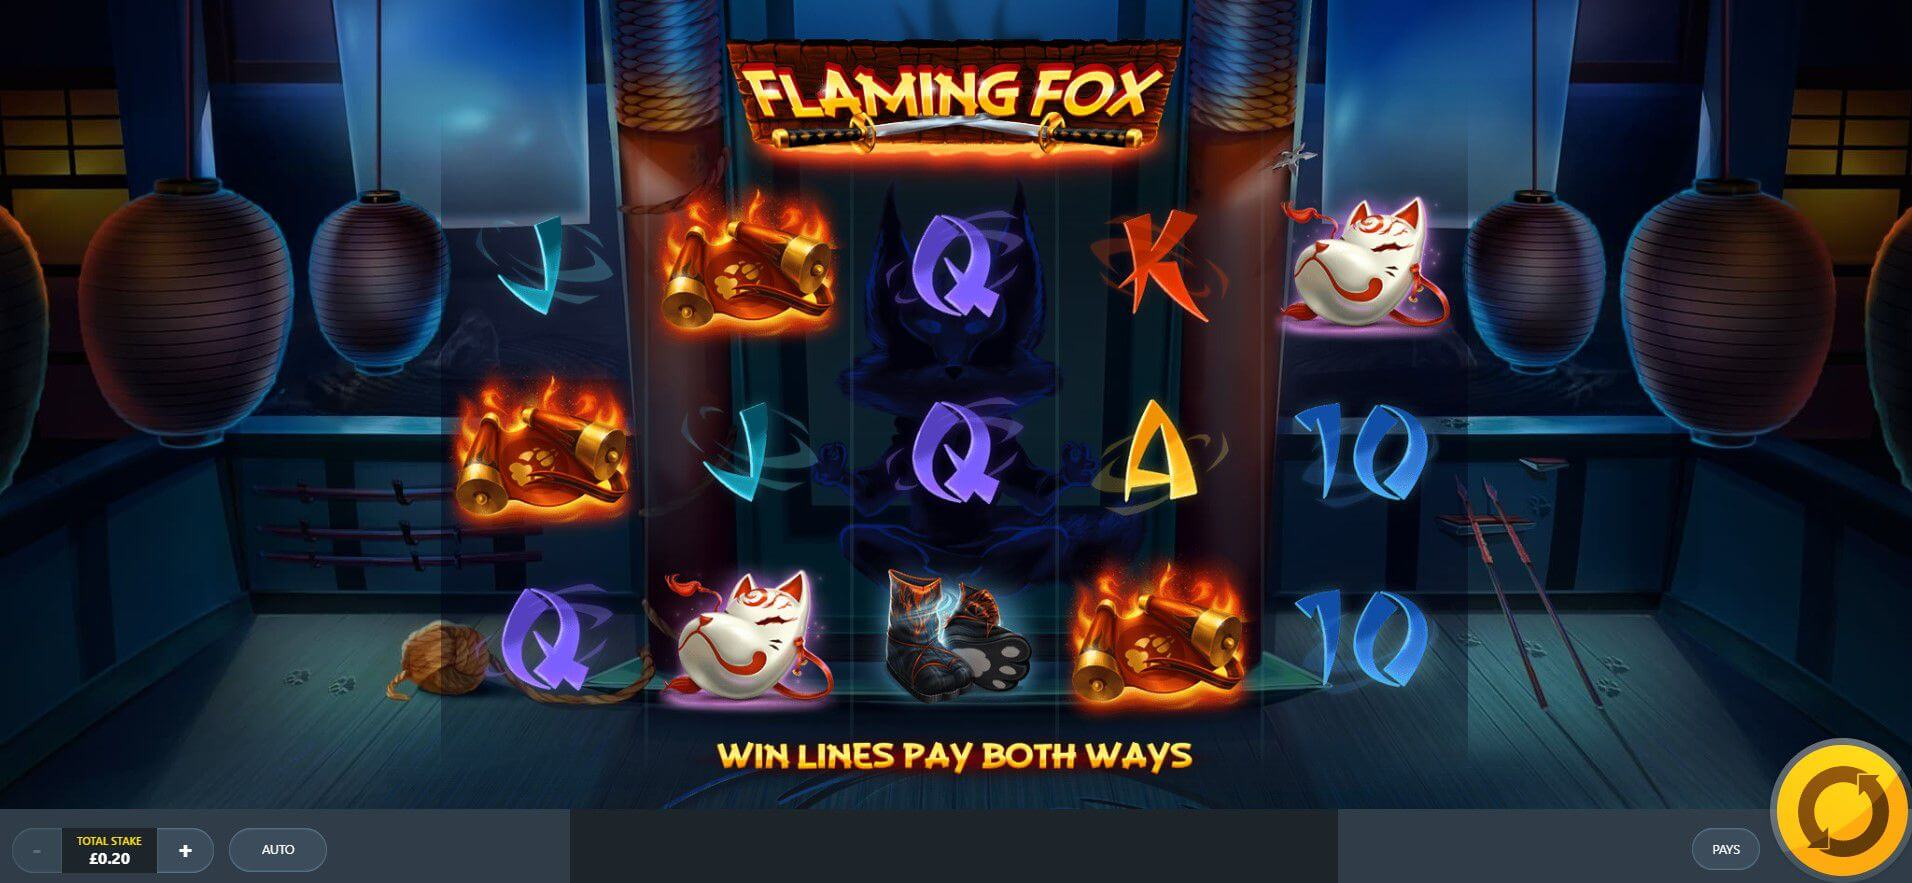 Flaming Fox Slot Gameplay